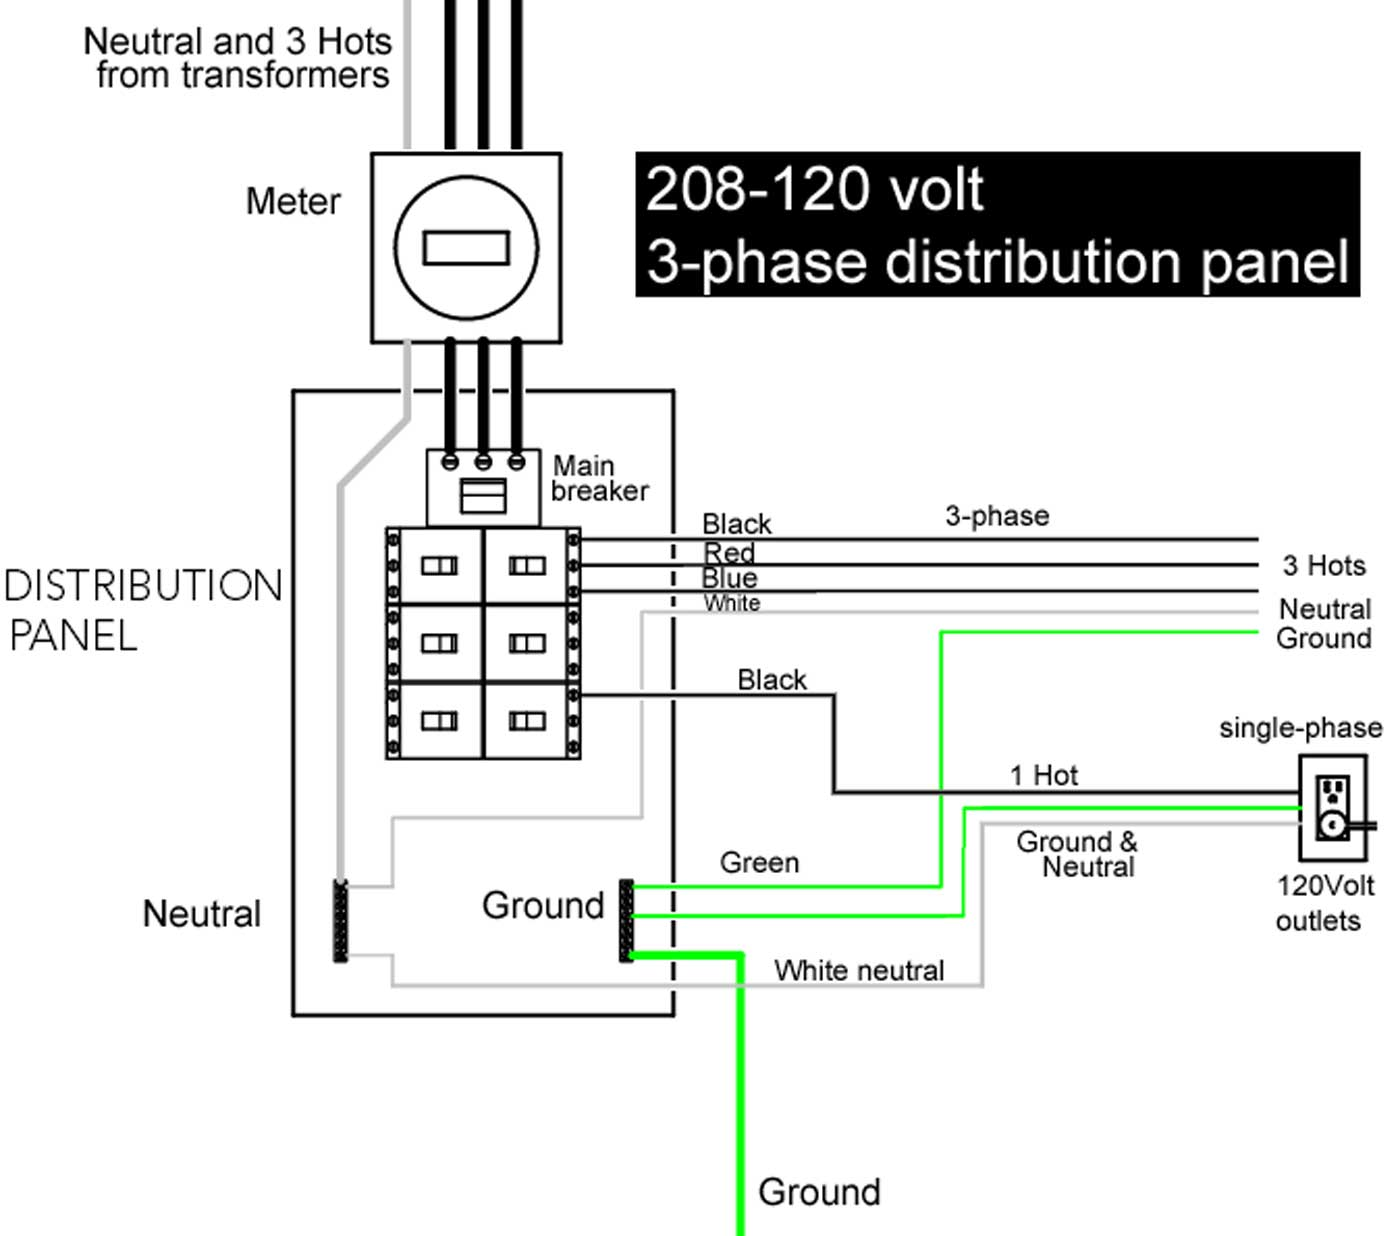 3 phase distribution panel how to wire 3 phase 3 phase electrical panel diagram at gsmx.co